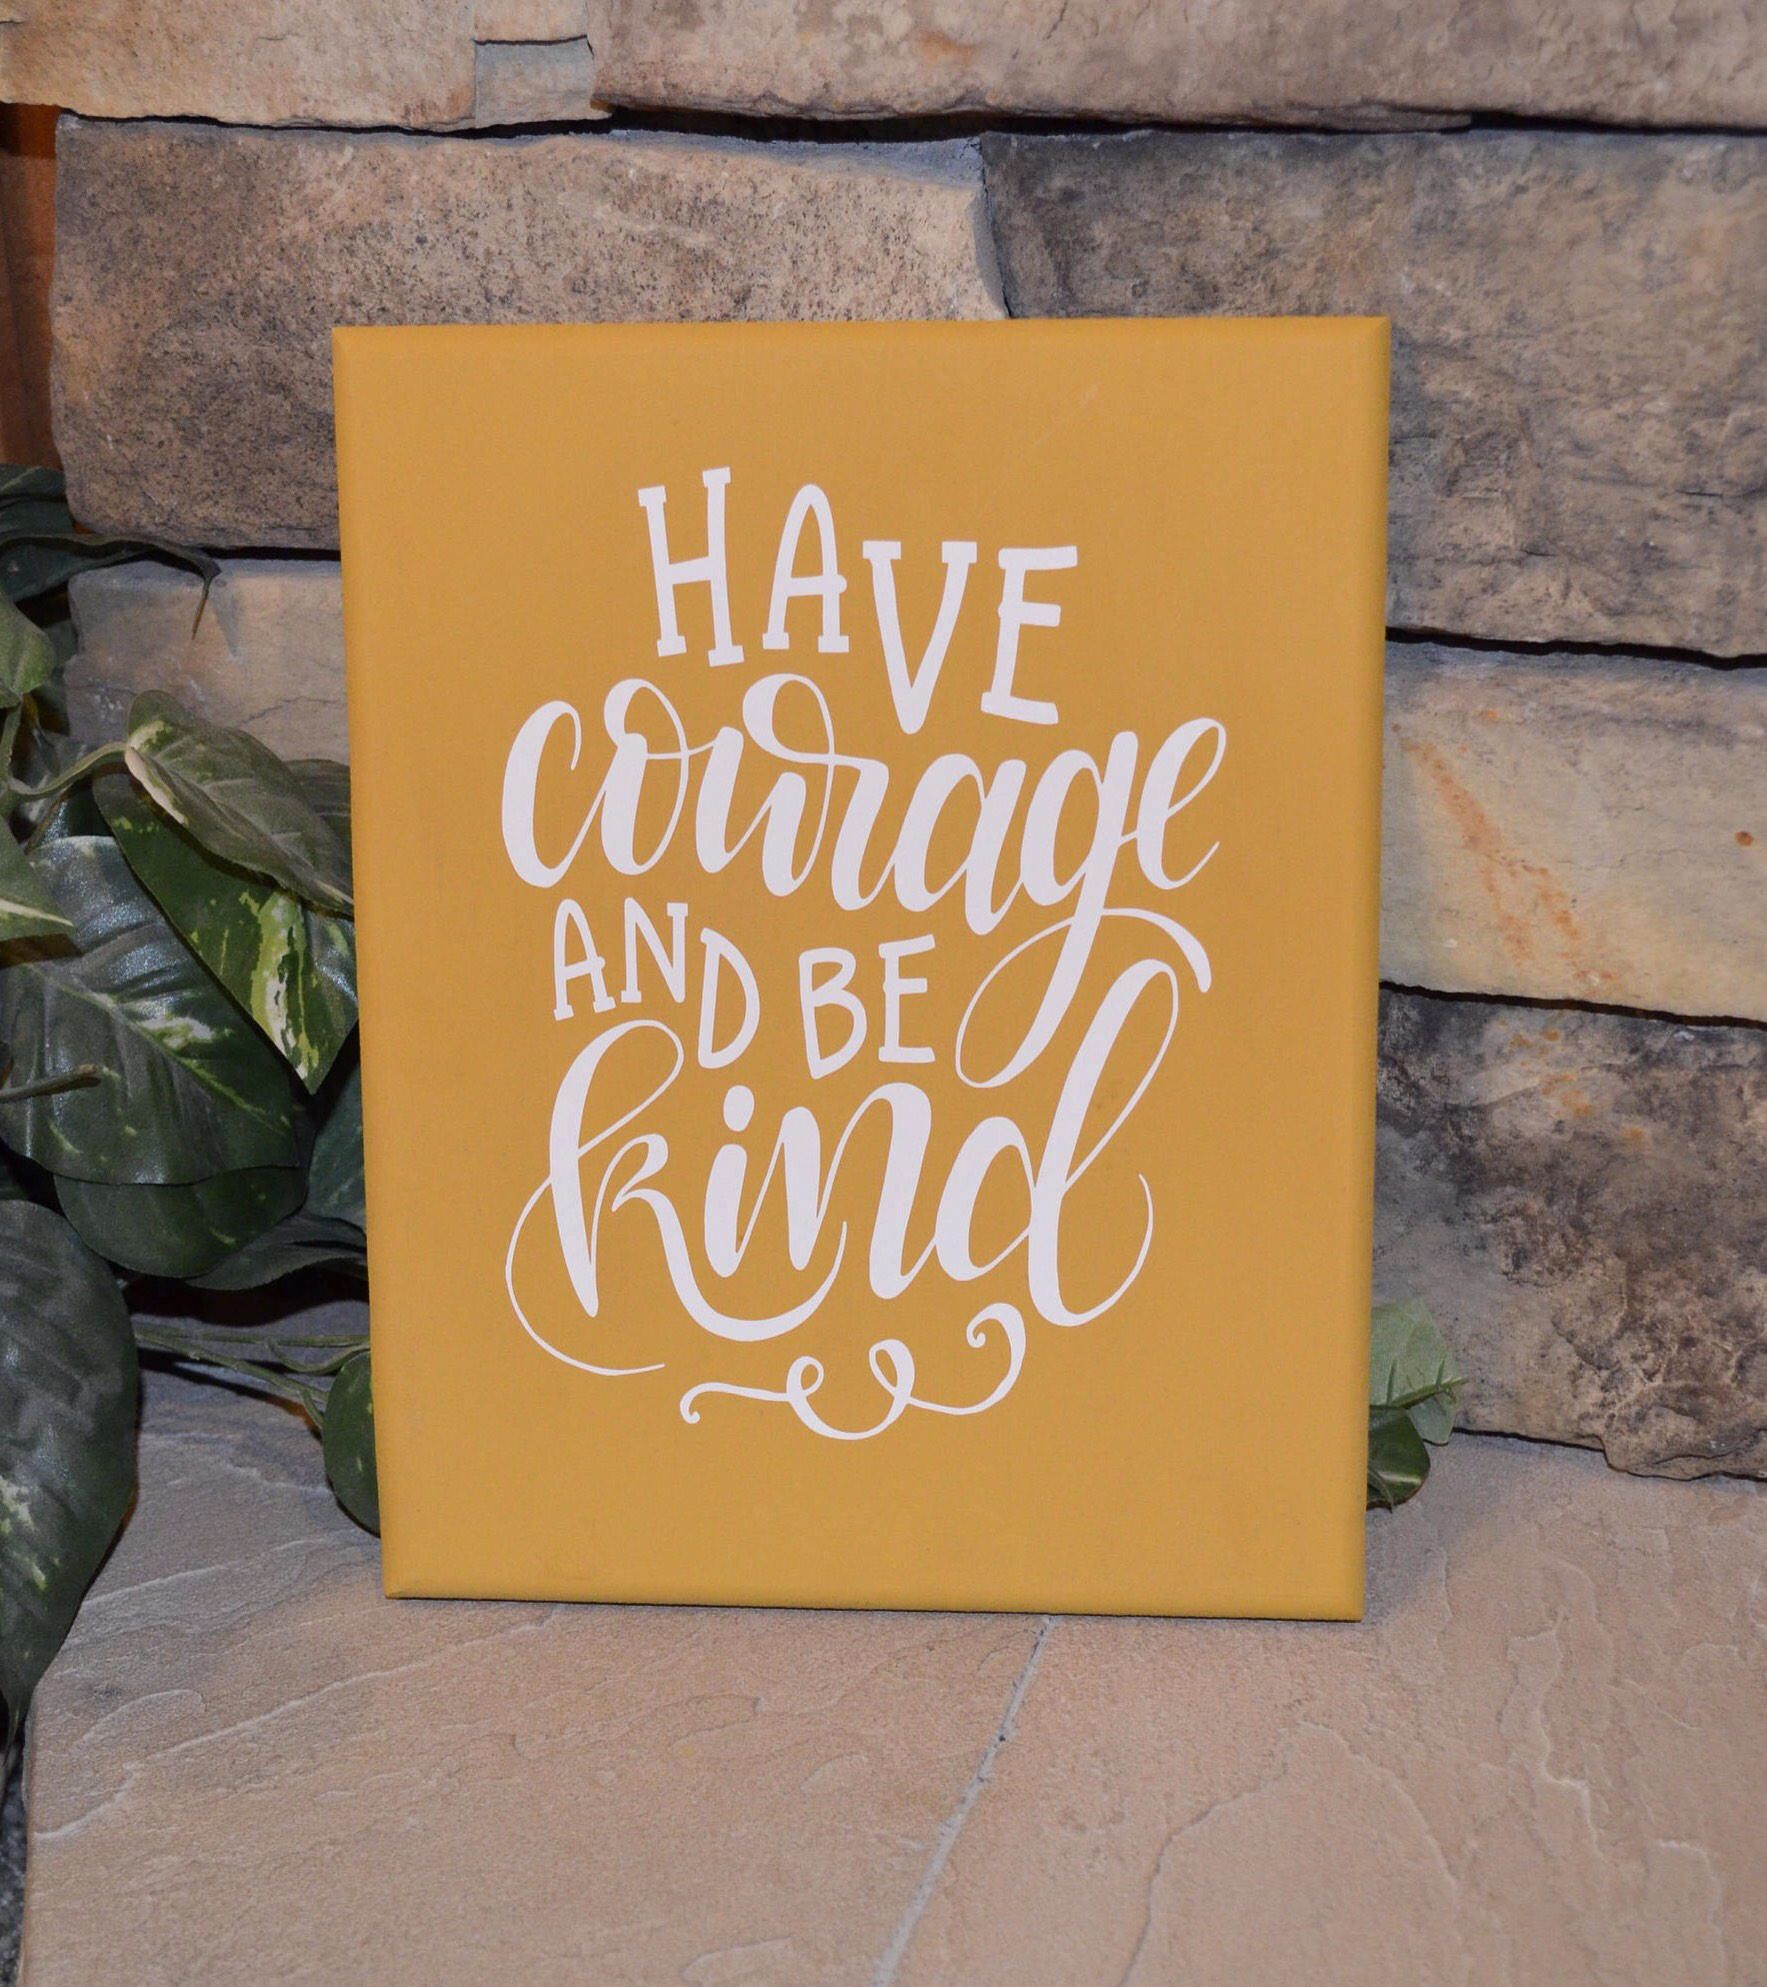 Have Courage And Be Kind Sign Painted Wood Sign Home Decor Etsy In 2021 Painted Wood Signs Wood Signs Home Decor Painted Signs